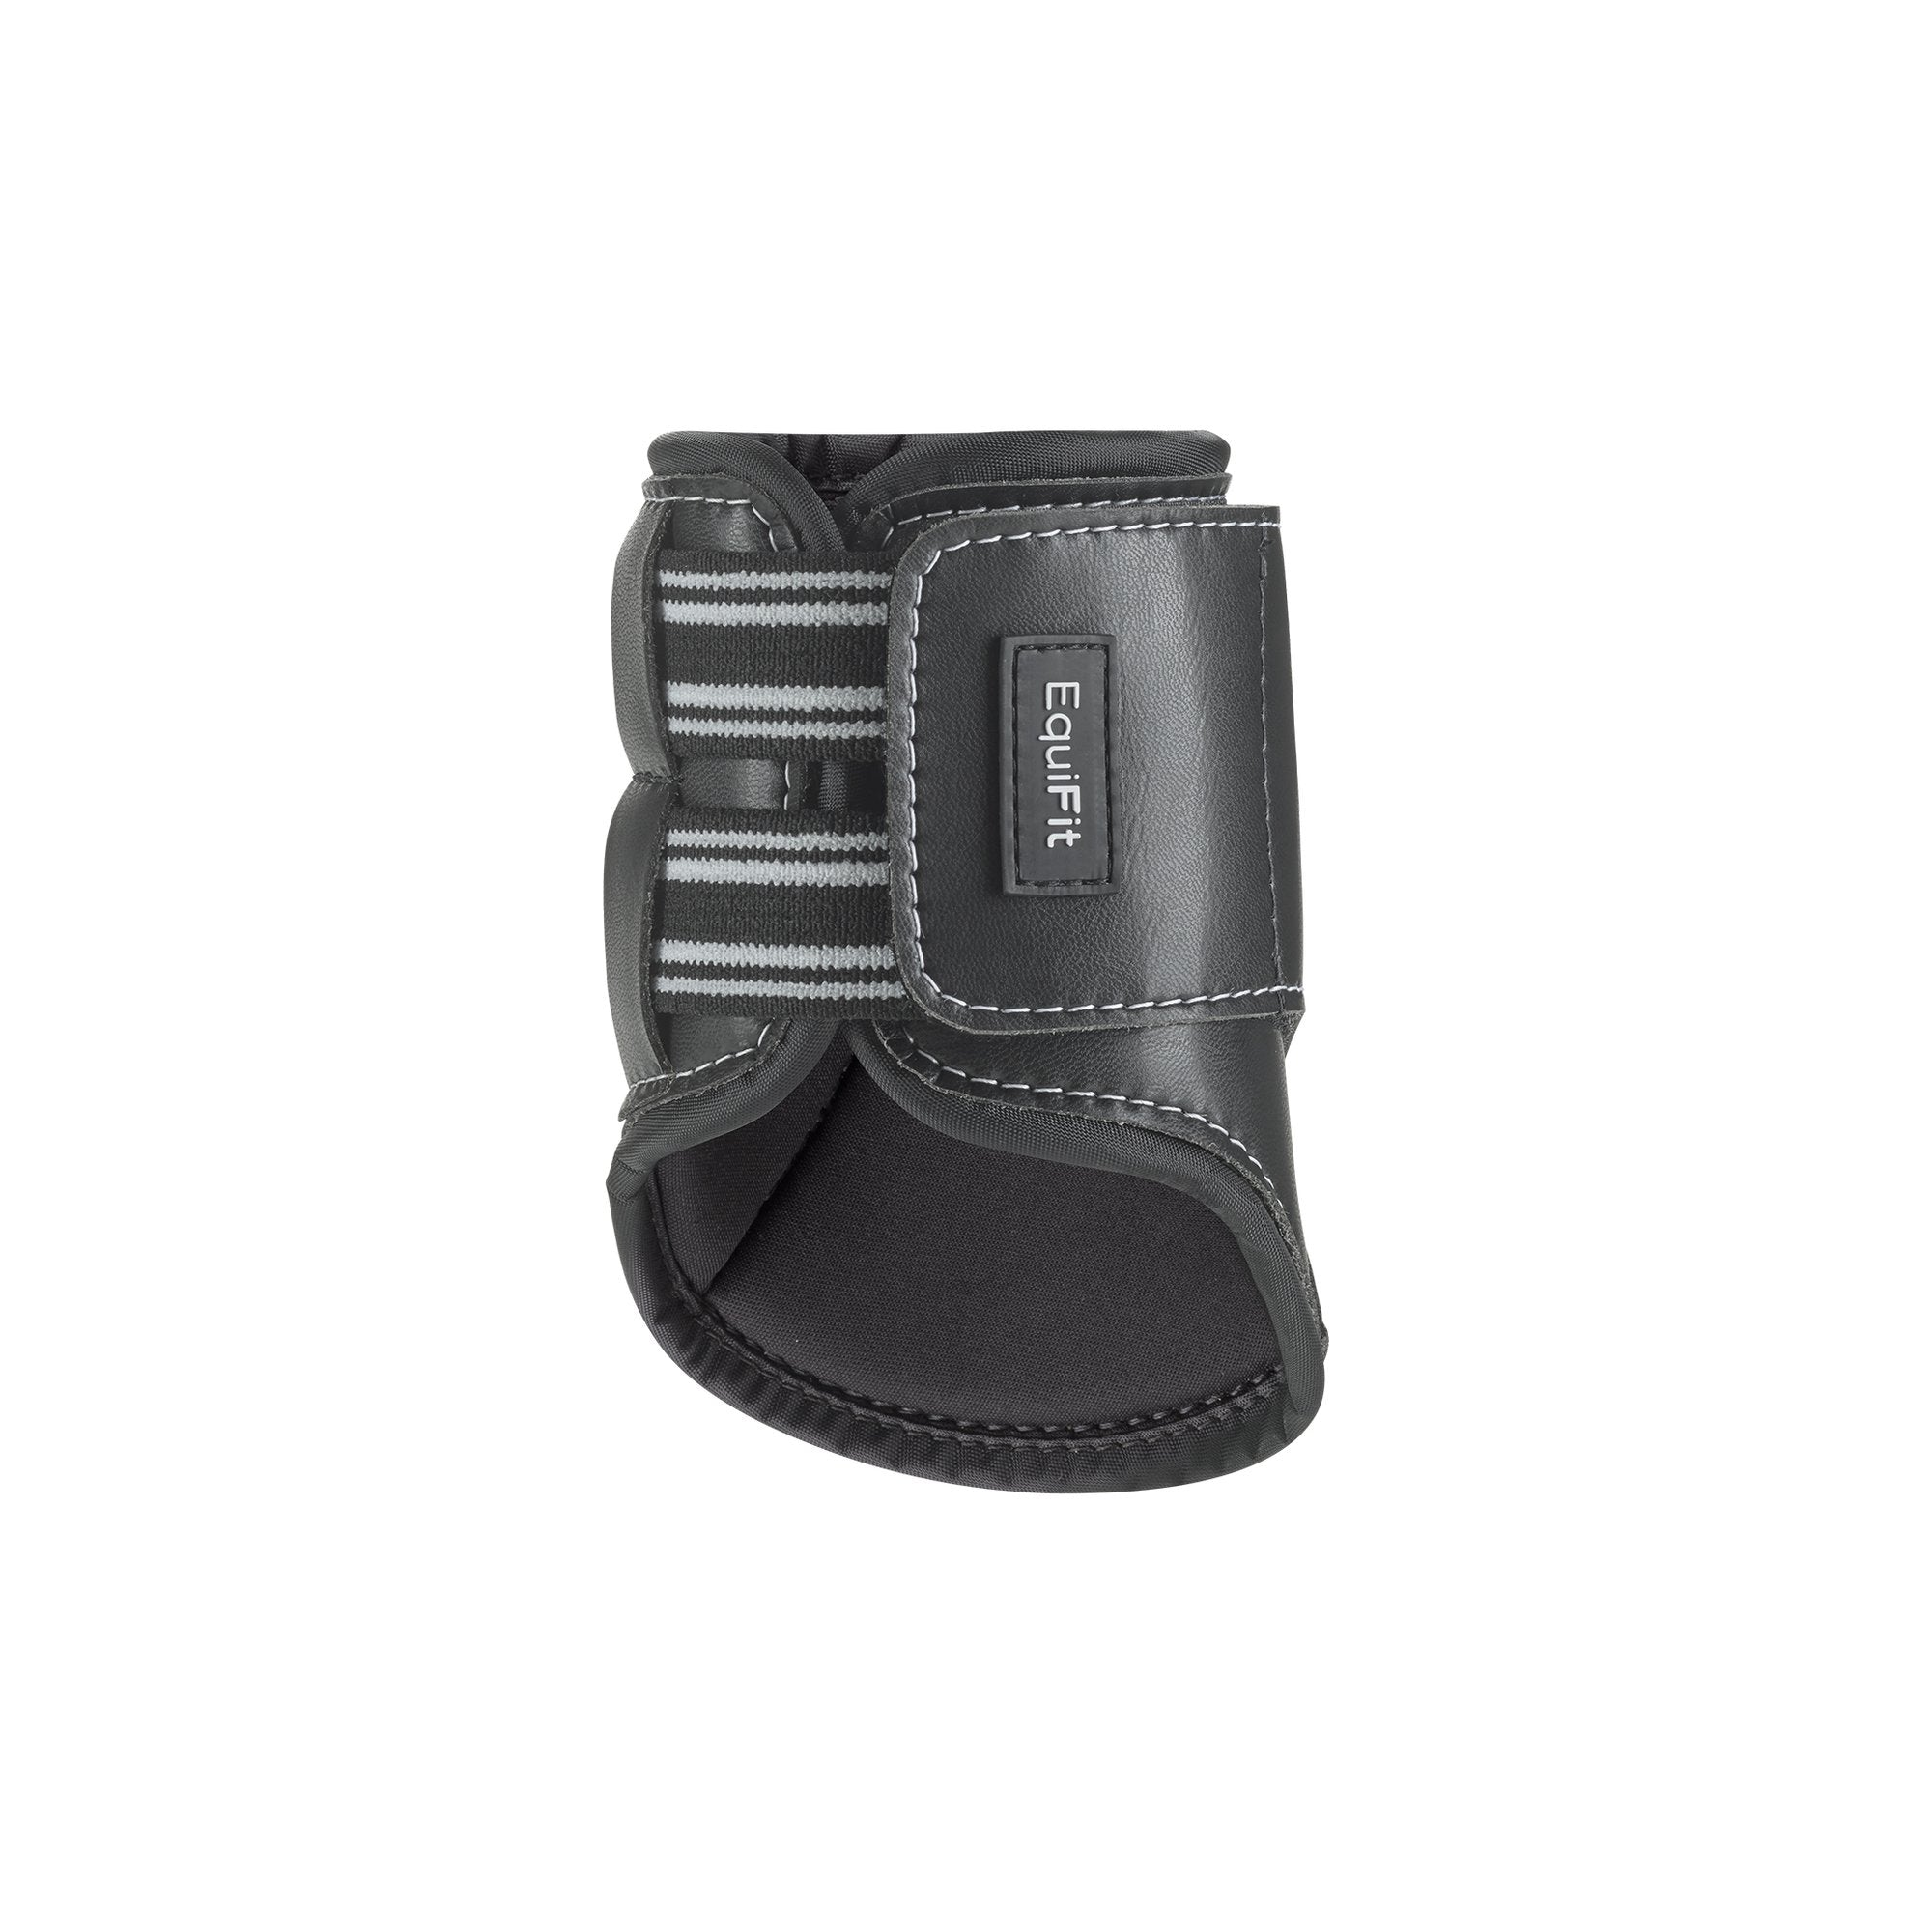 Equifit Custom MultiTeq Hind Boot